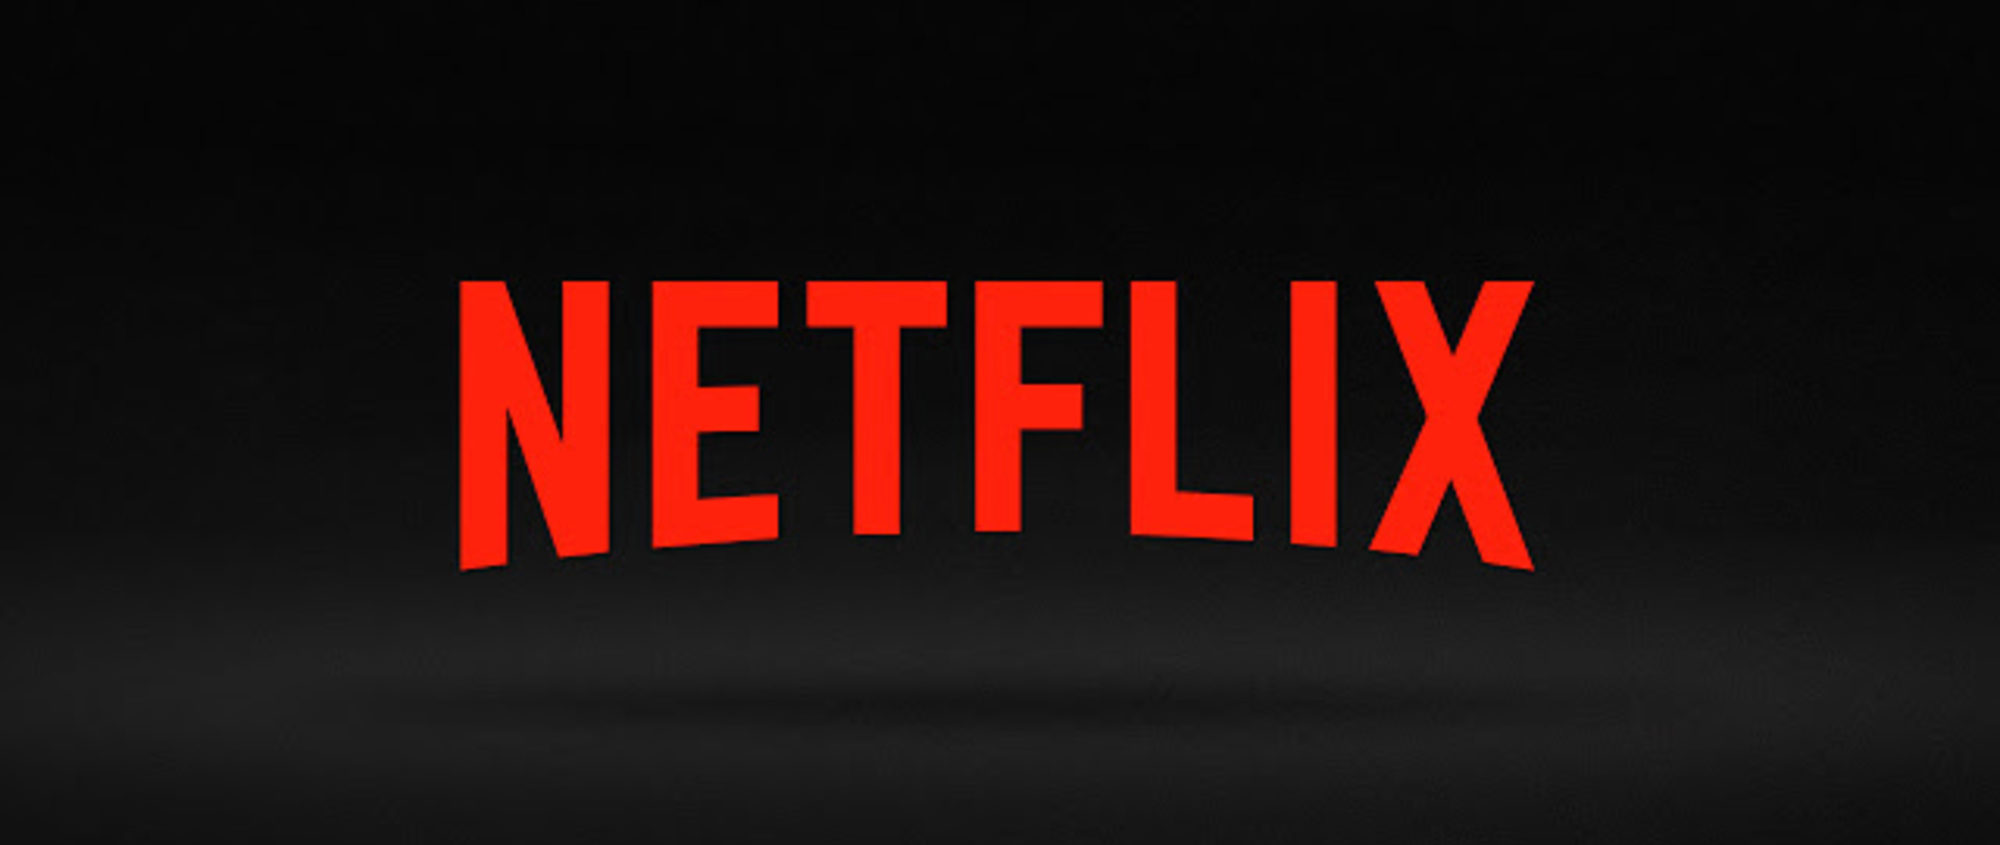 Questions About Your Netflix Account? We Have Top Answers